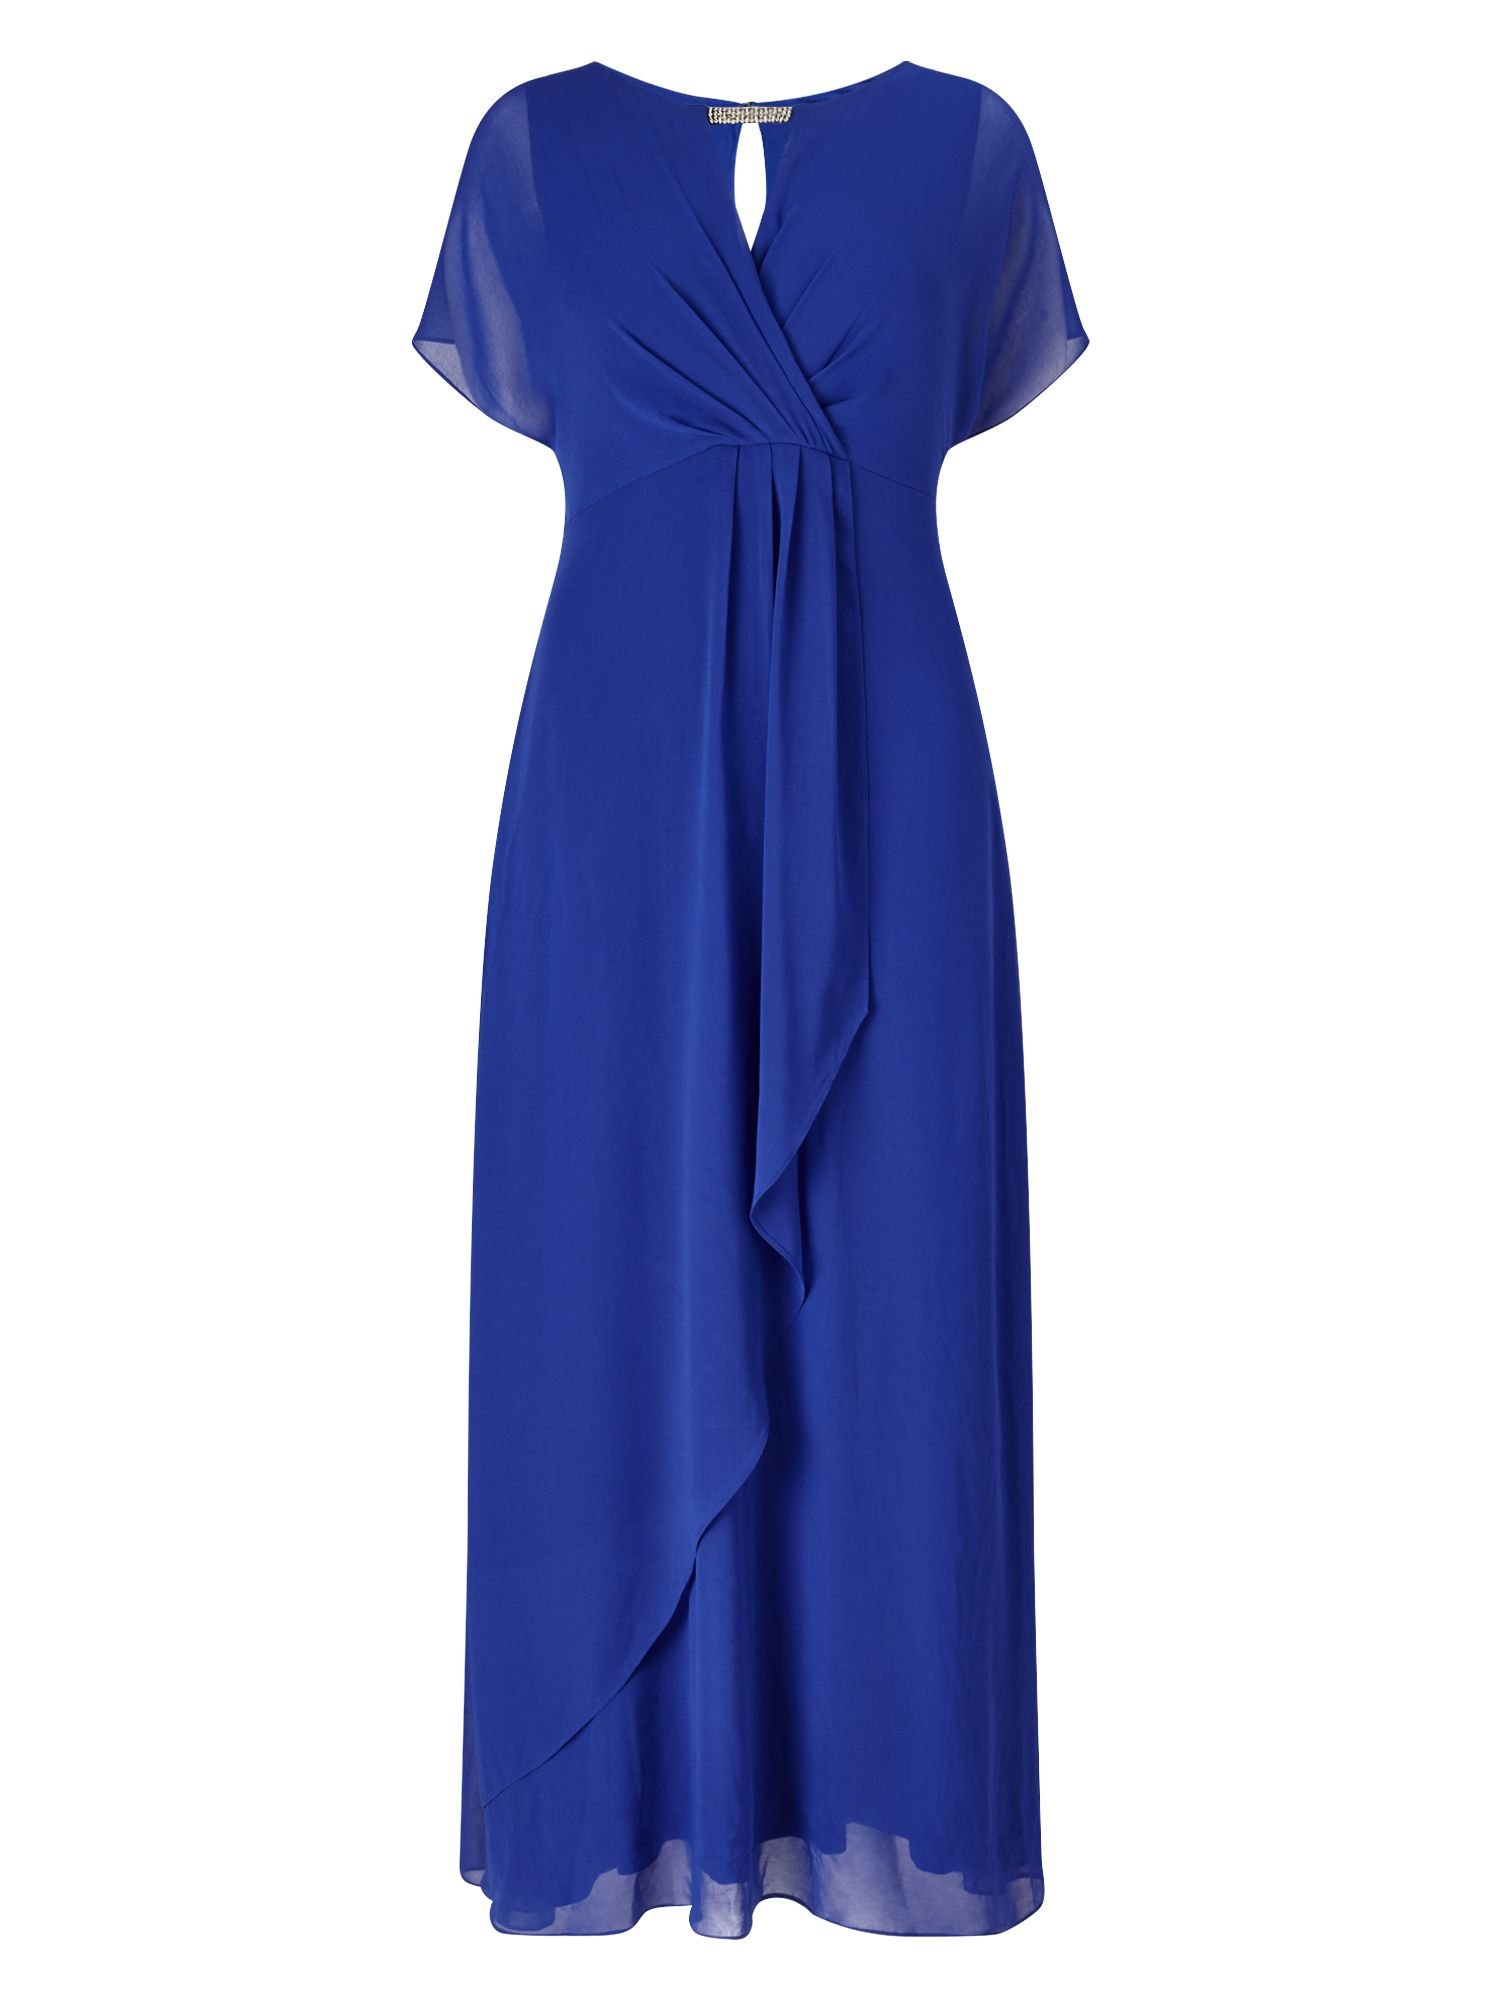 Studio 8 Destiny Dress, Blue